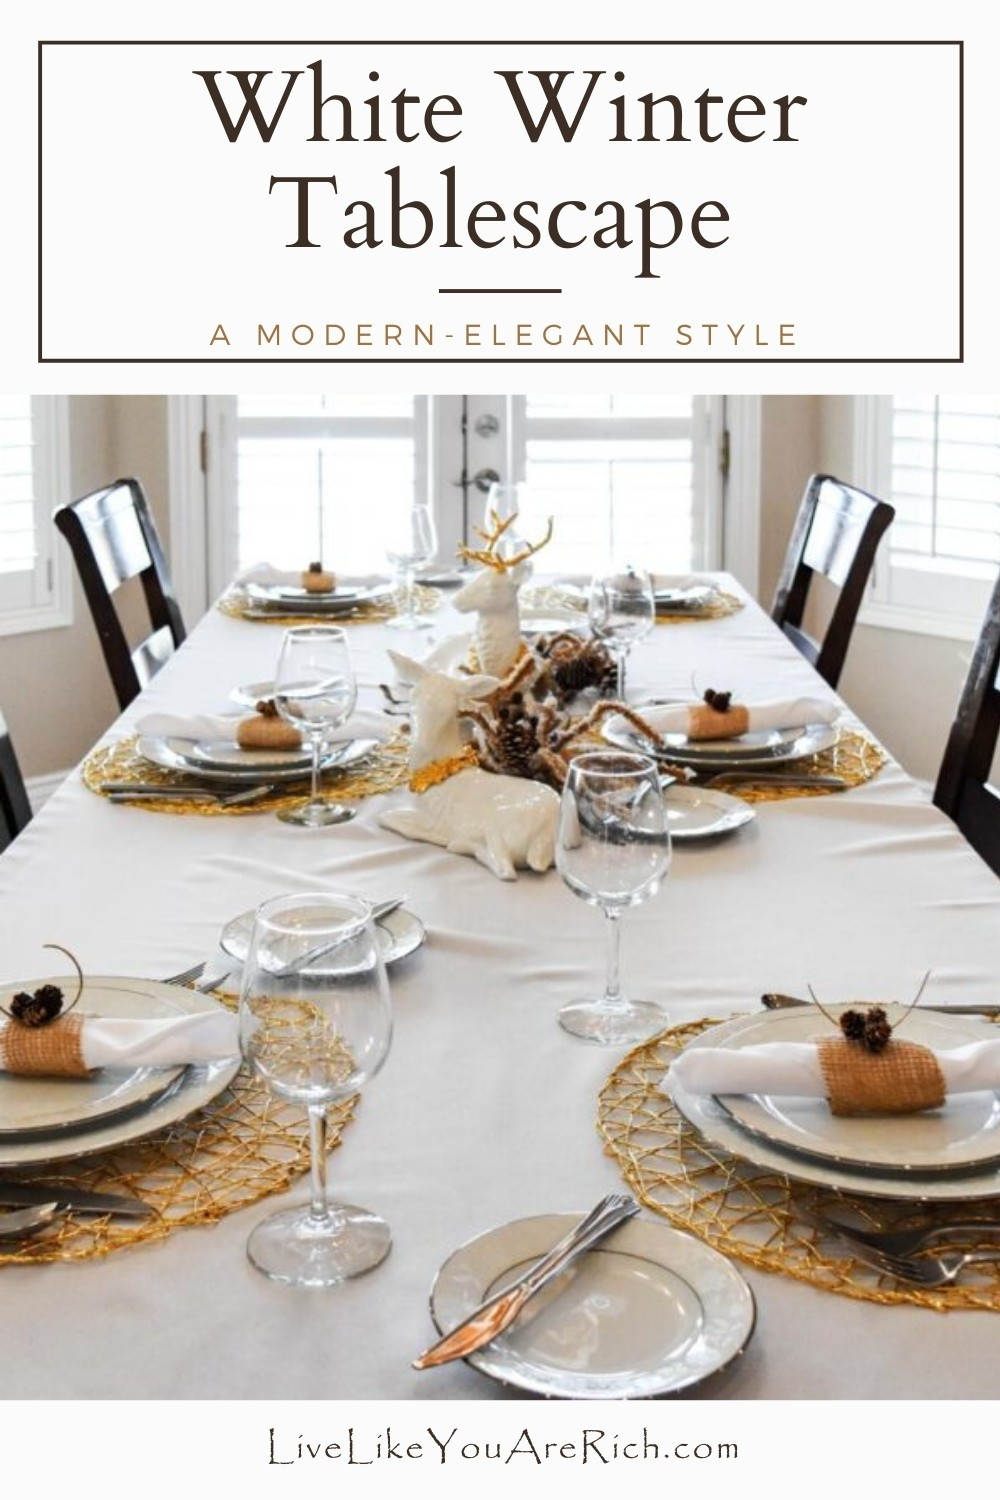 I created this white winter tables cape for an early Christmas dinner we had with some of my husband's family. This tablescape was easy to put together. I used what I had on hand which saved me time shopping and money.